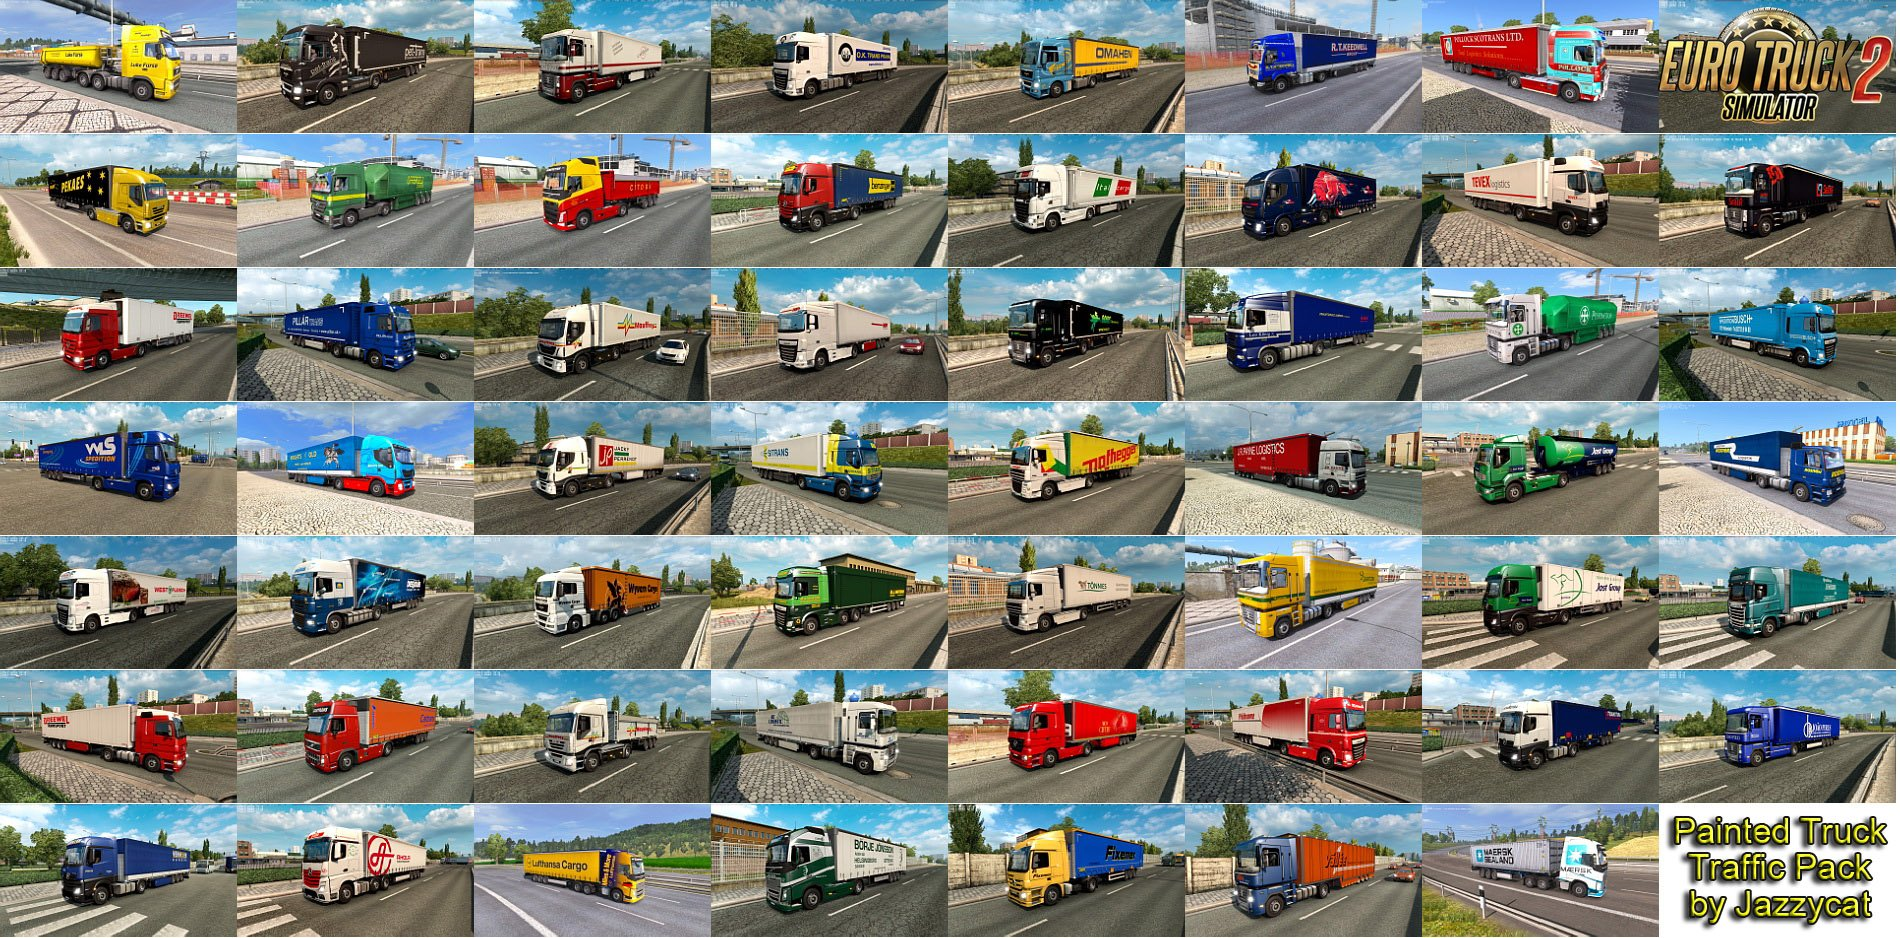 Painted Truck Traffic Pack v6.2.2 by Jazzycat (1.32.x)